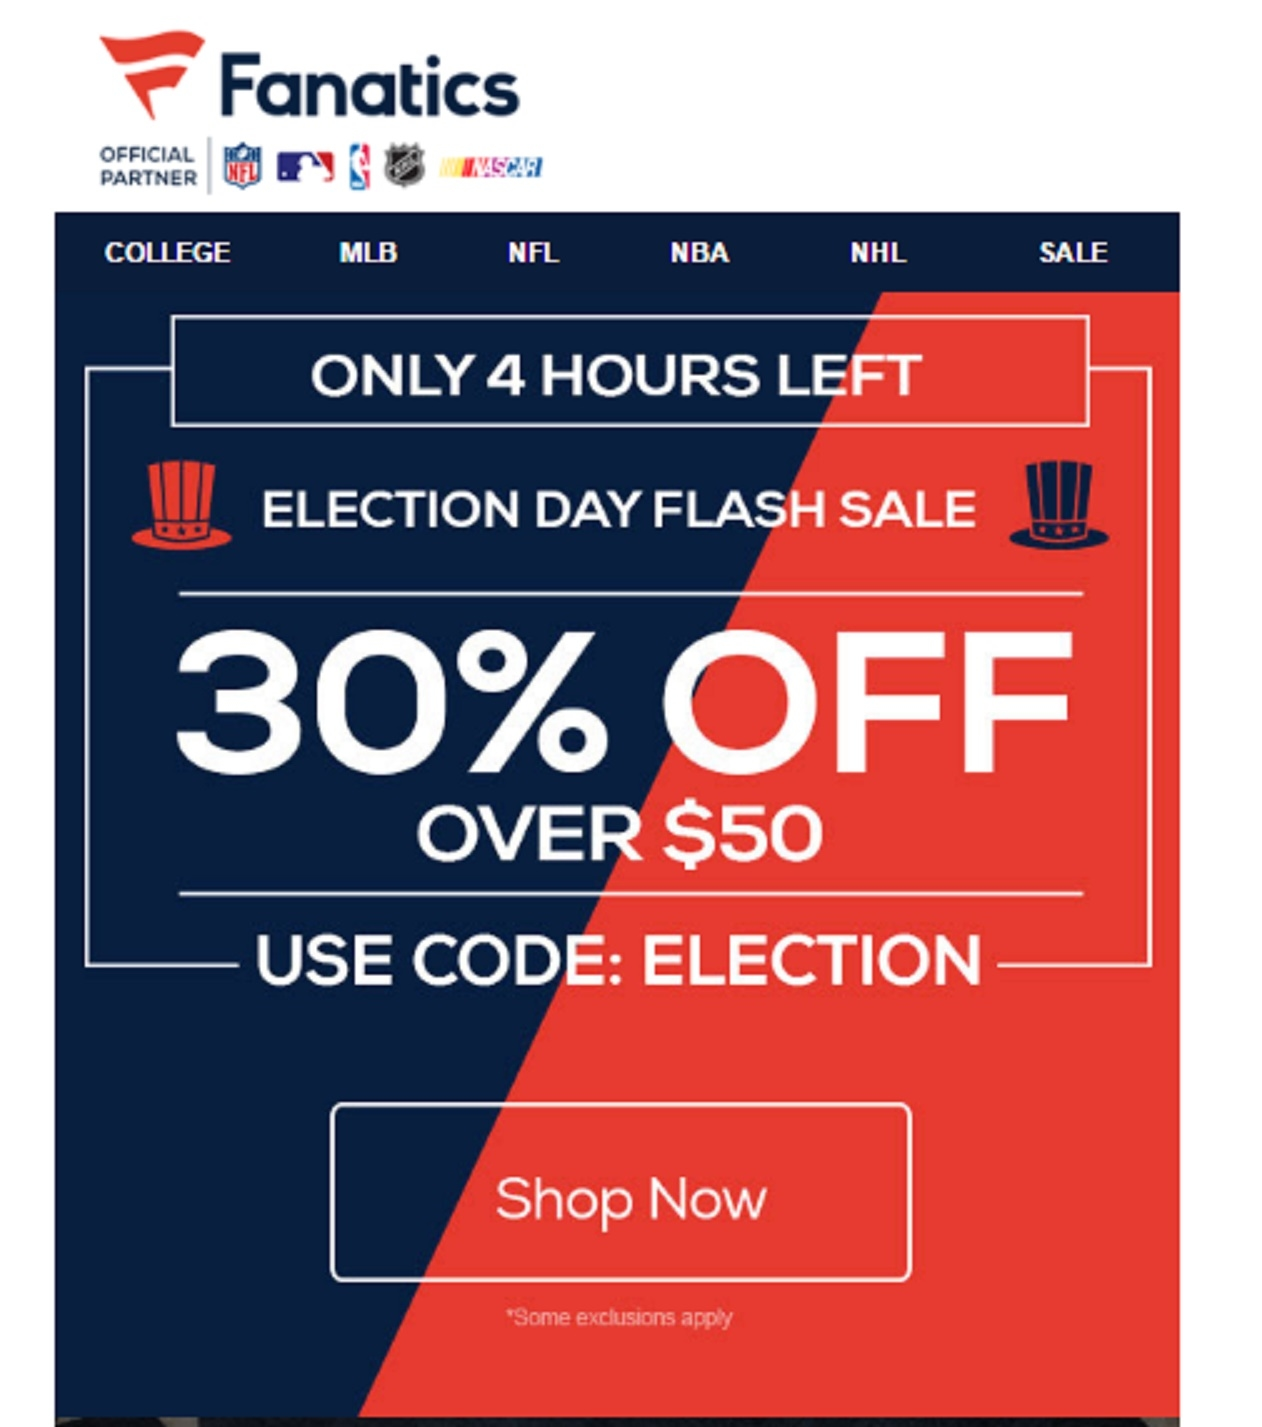 Fanatic coupon code